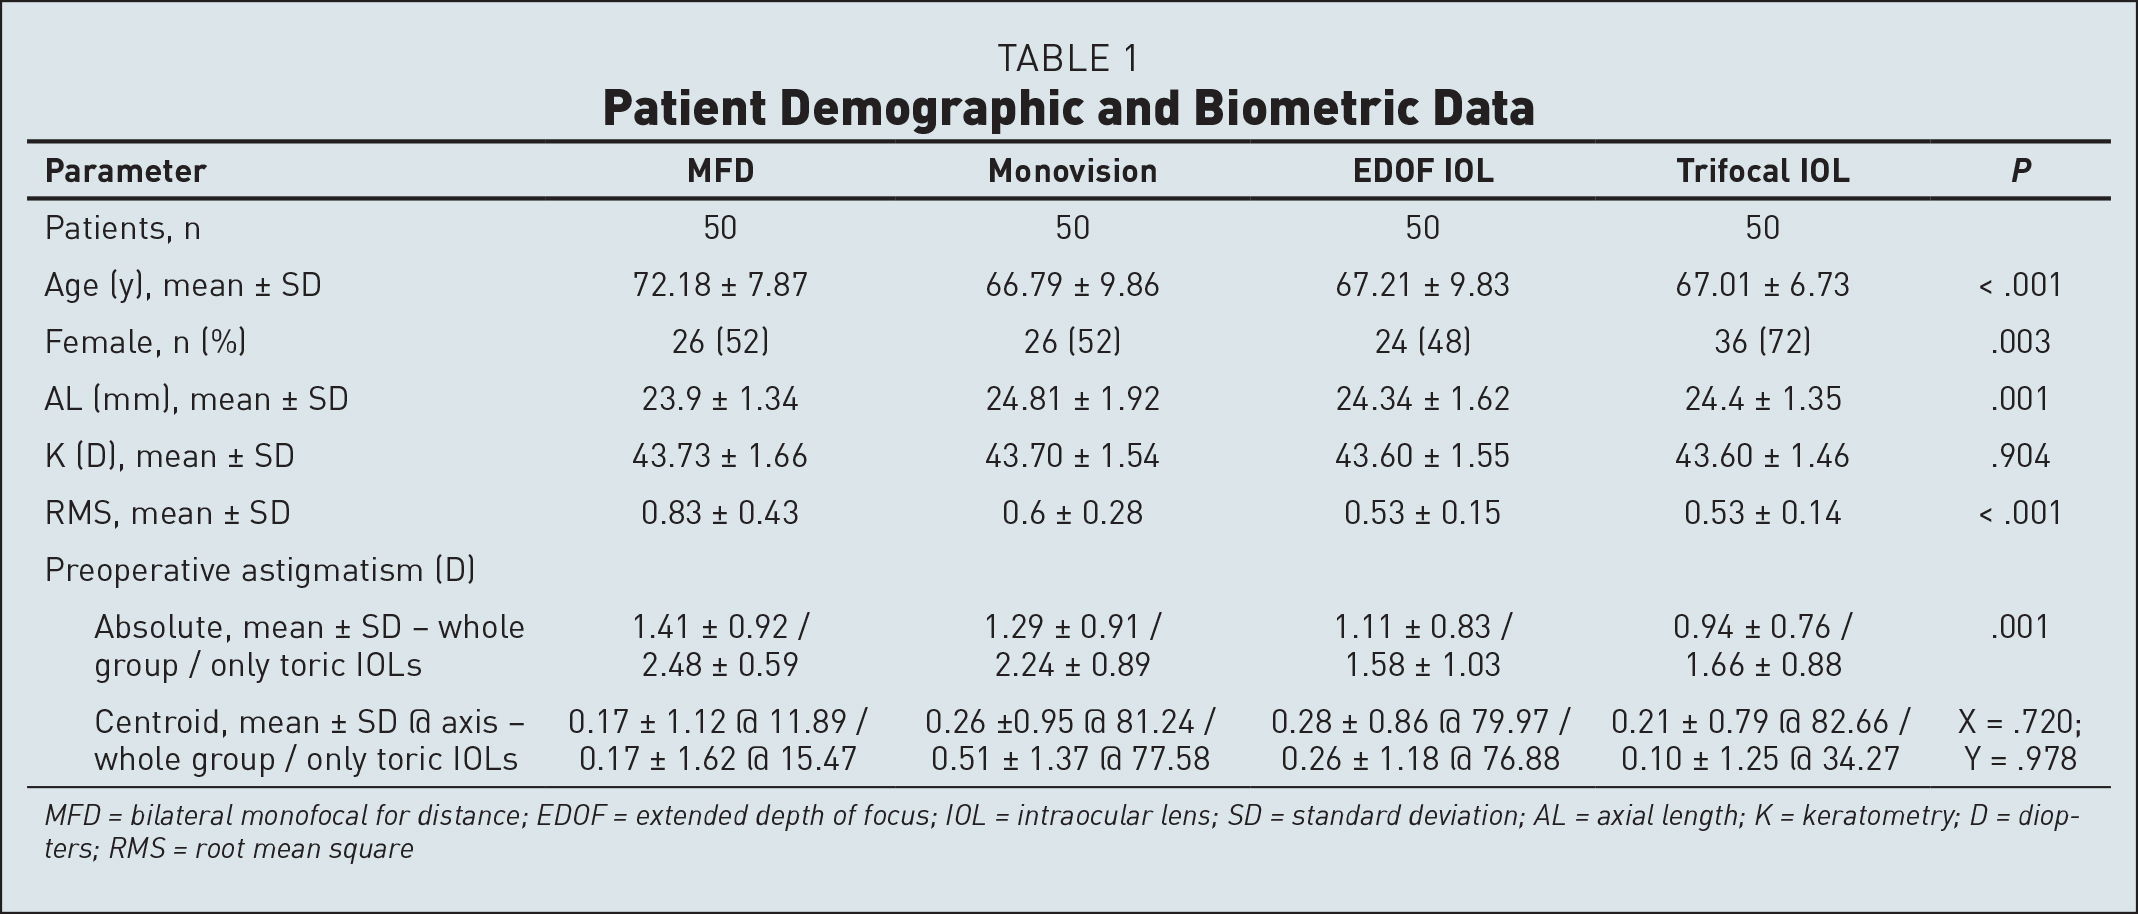 Patient Demographic and Biometric Data